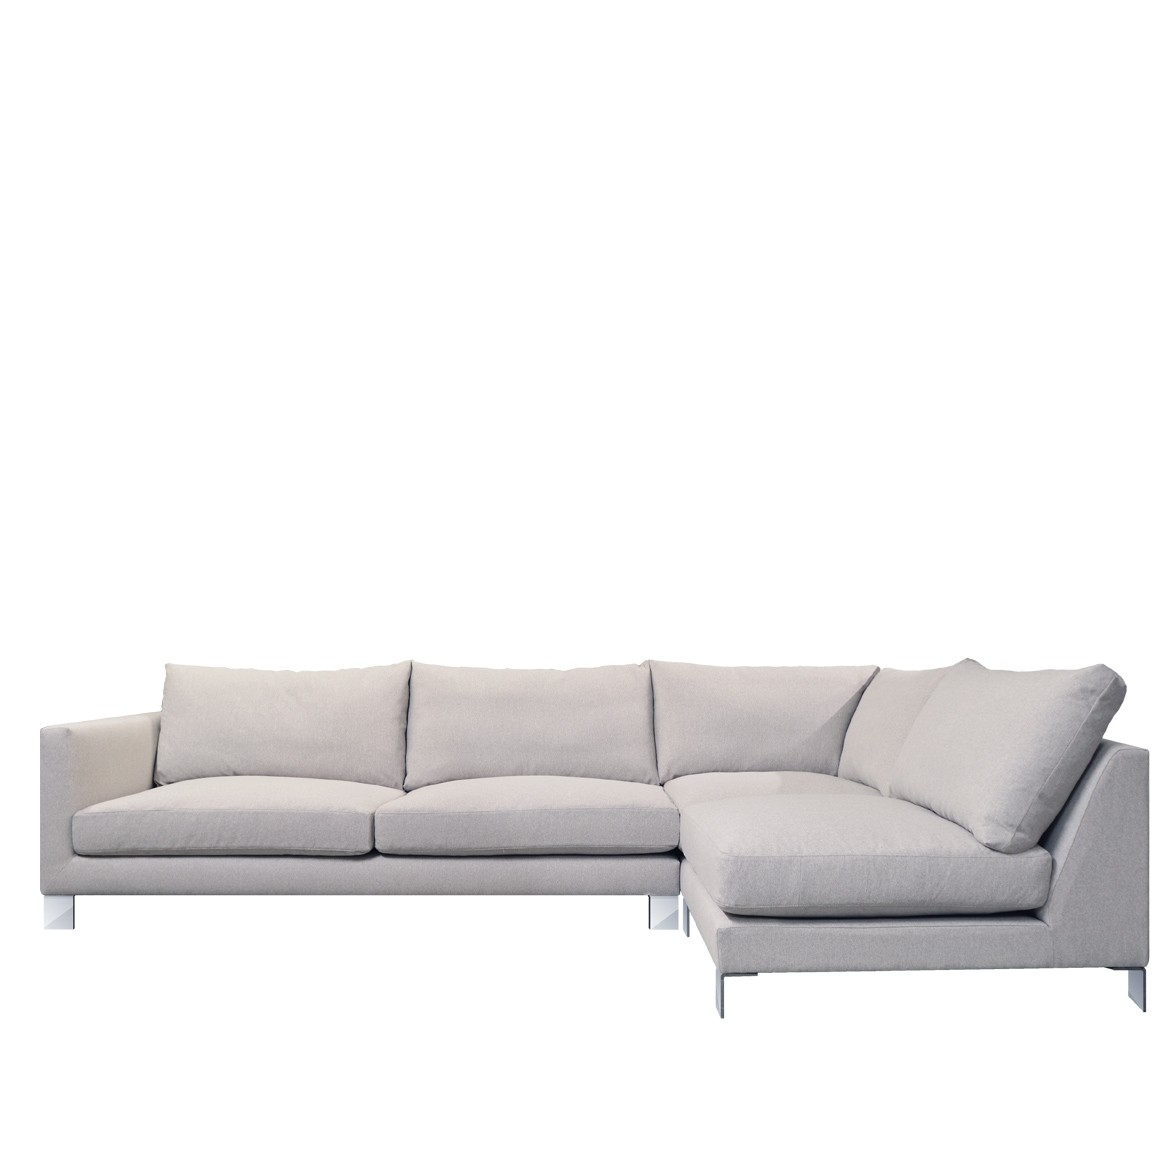 Siesta medium deep corner sofa